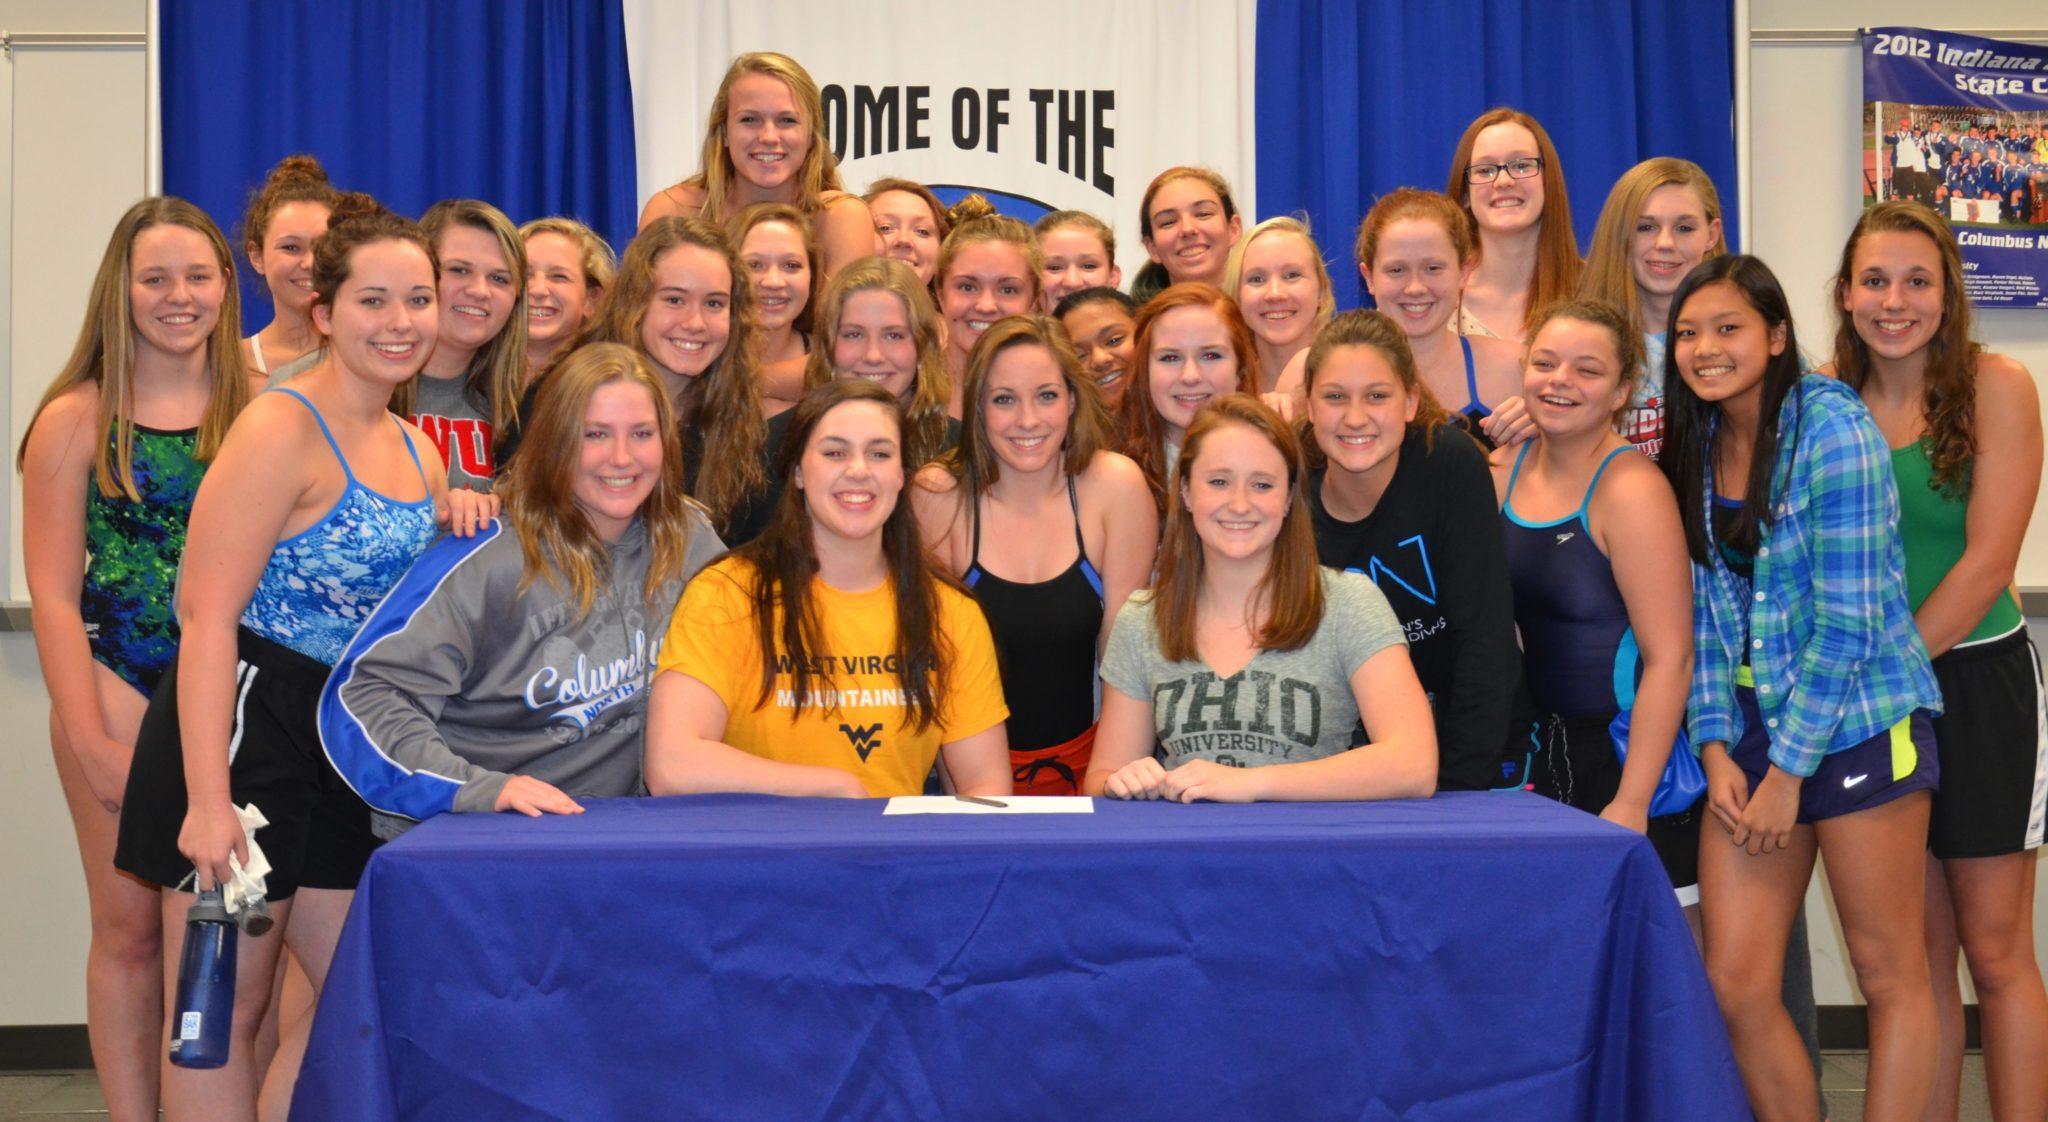 nli signing photos georgetown prep scottsdale aquatic club and more